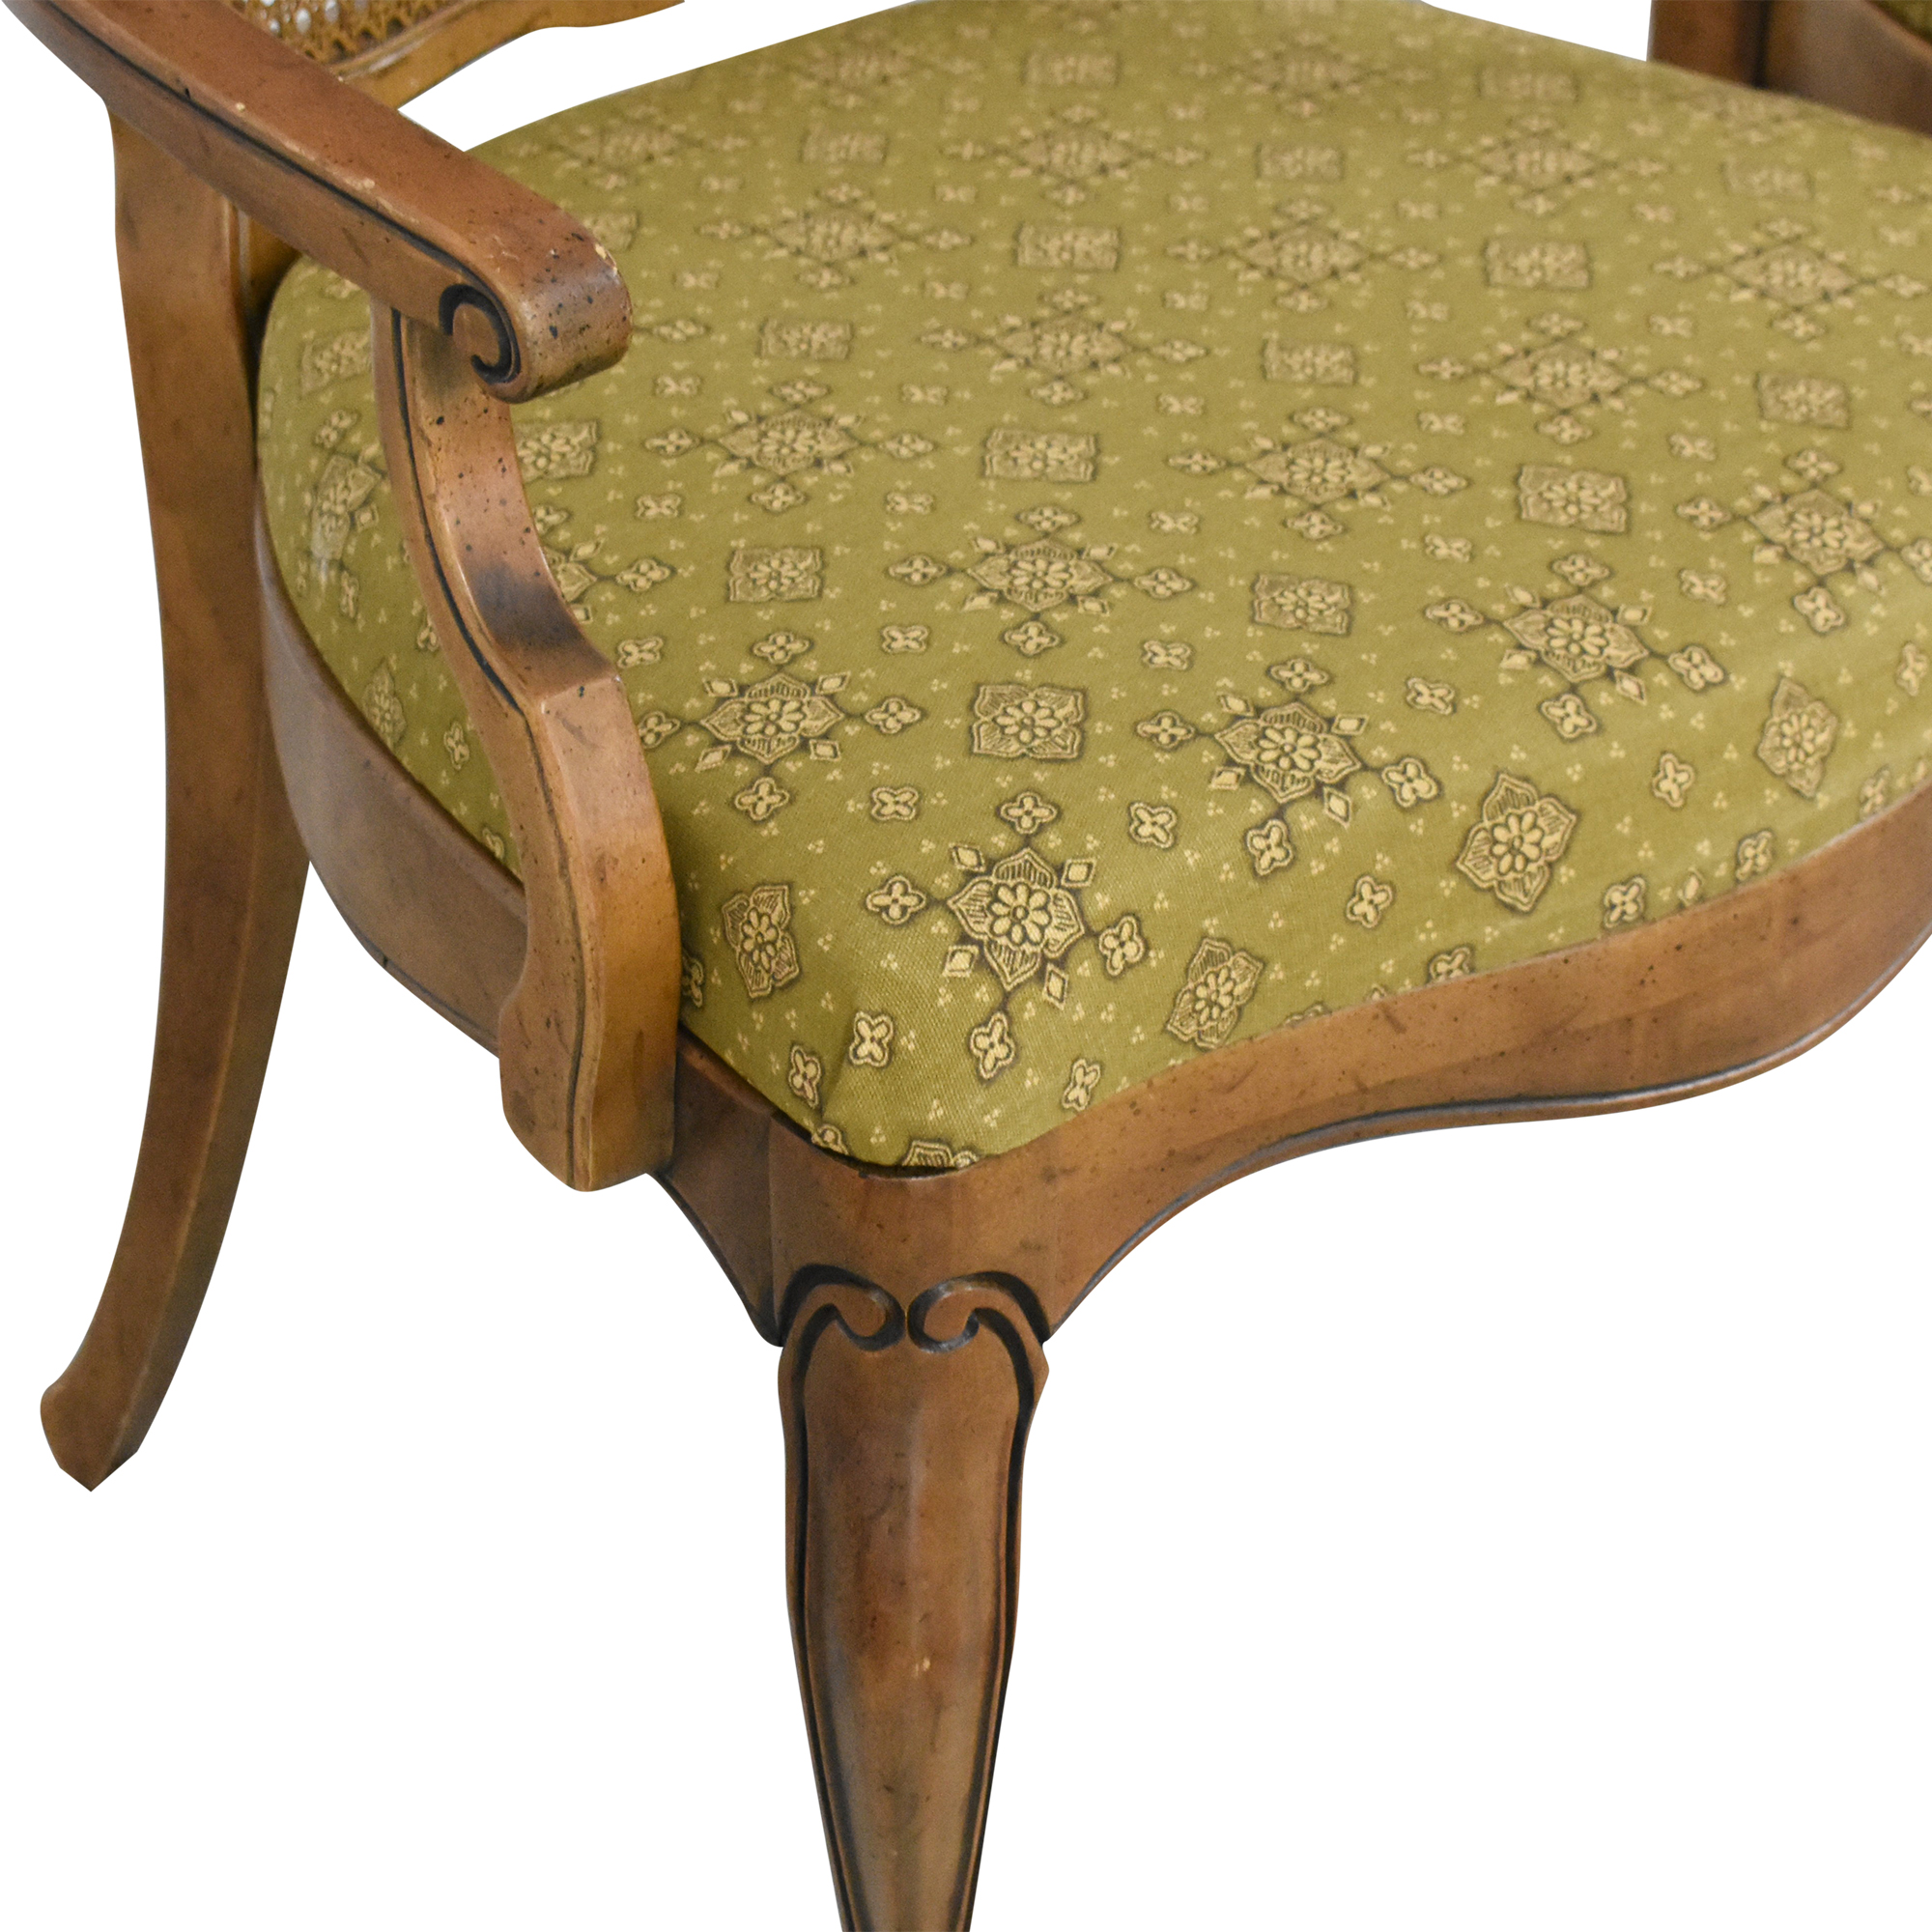 buy Drexel Touraine Dining Chairs Drexel Dining Chairs